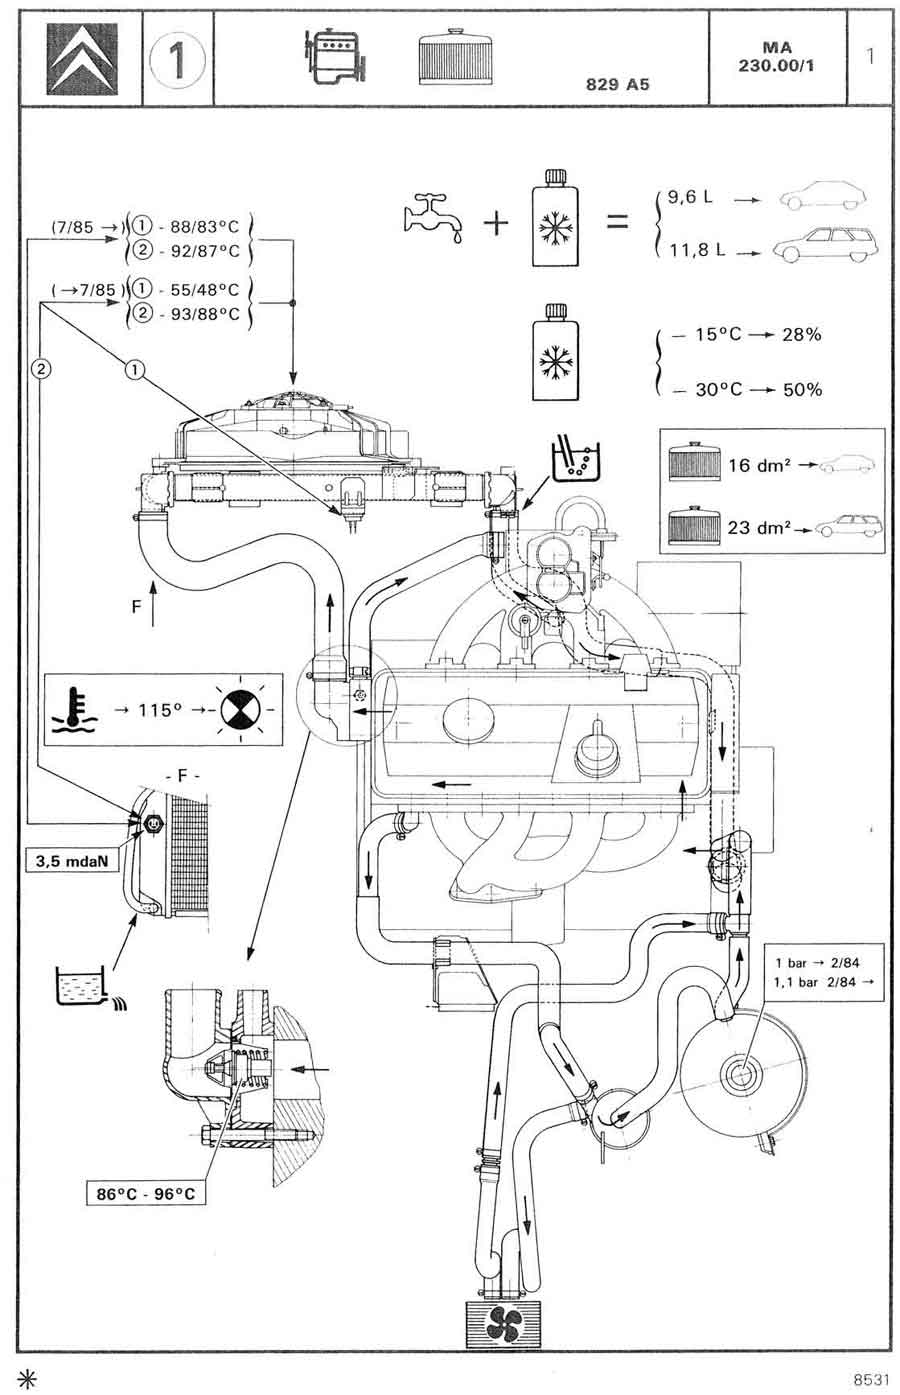 2004 Ford Focus Se Engine Diagram Great Design Of Wiring Mercury Grand 2002 Coolant